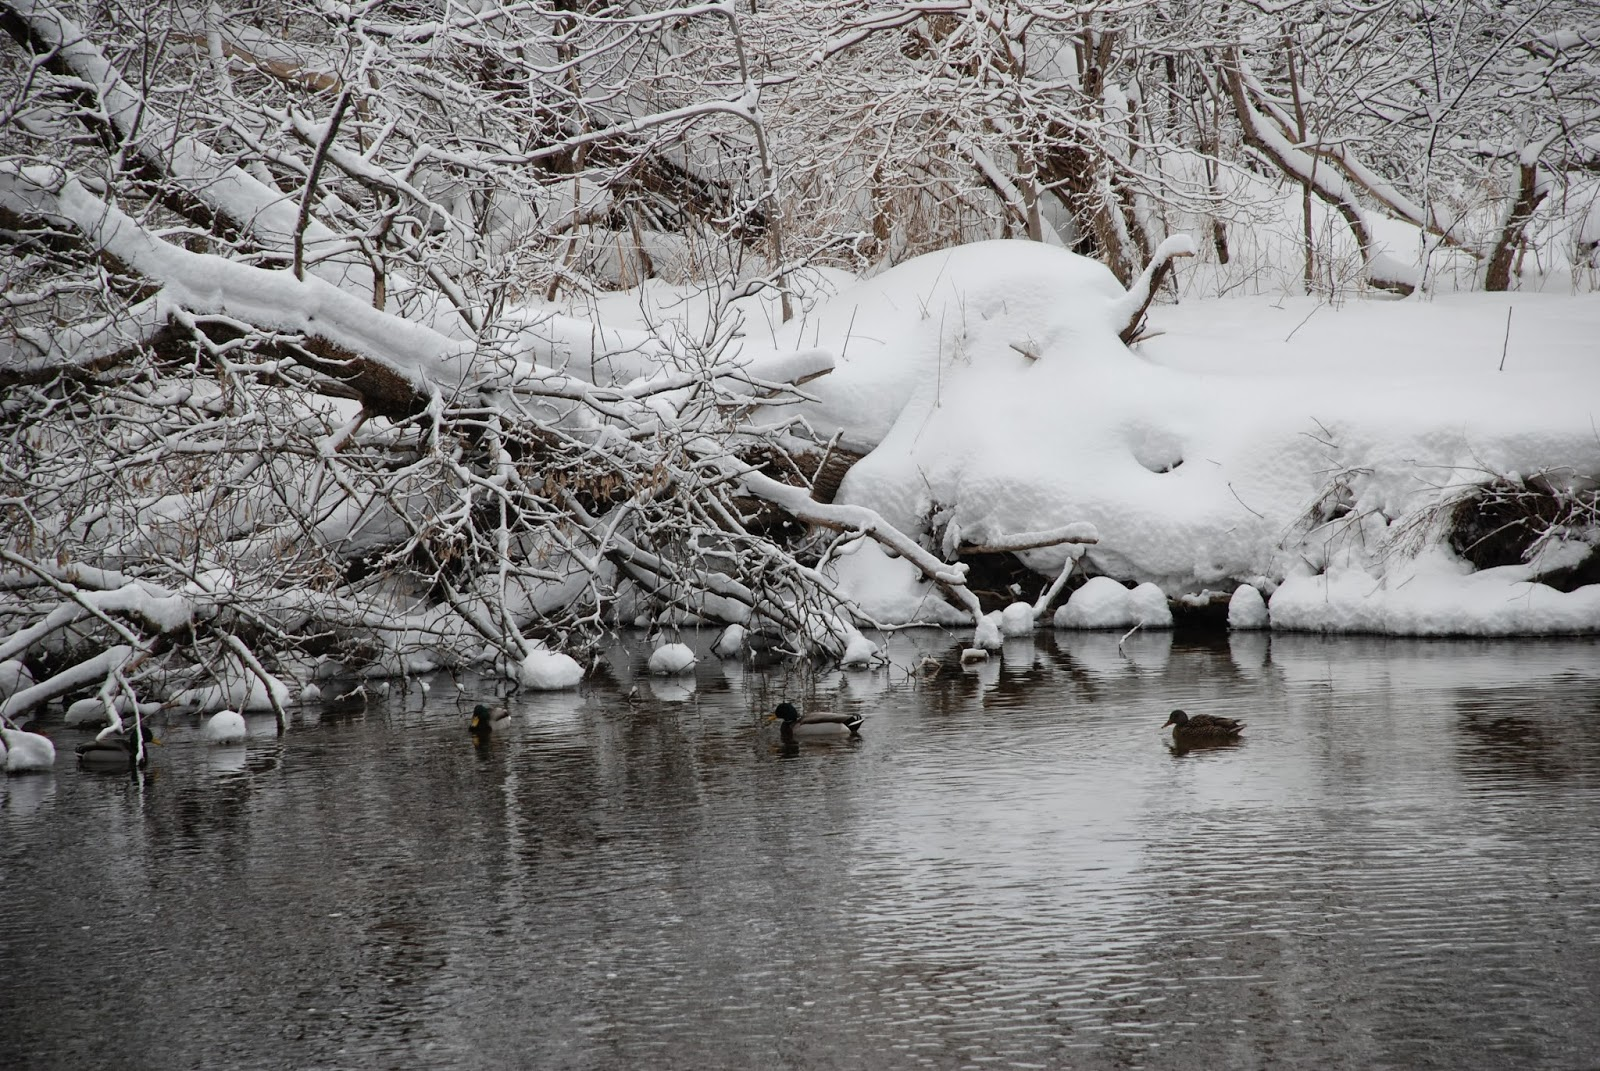 Ducks swimming on the Speed River in winter